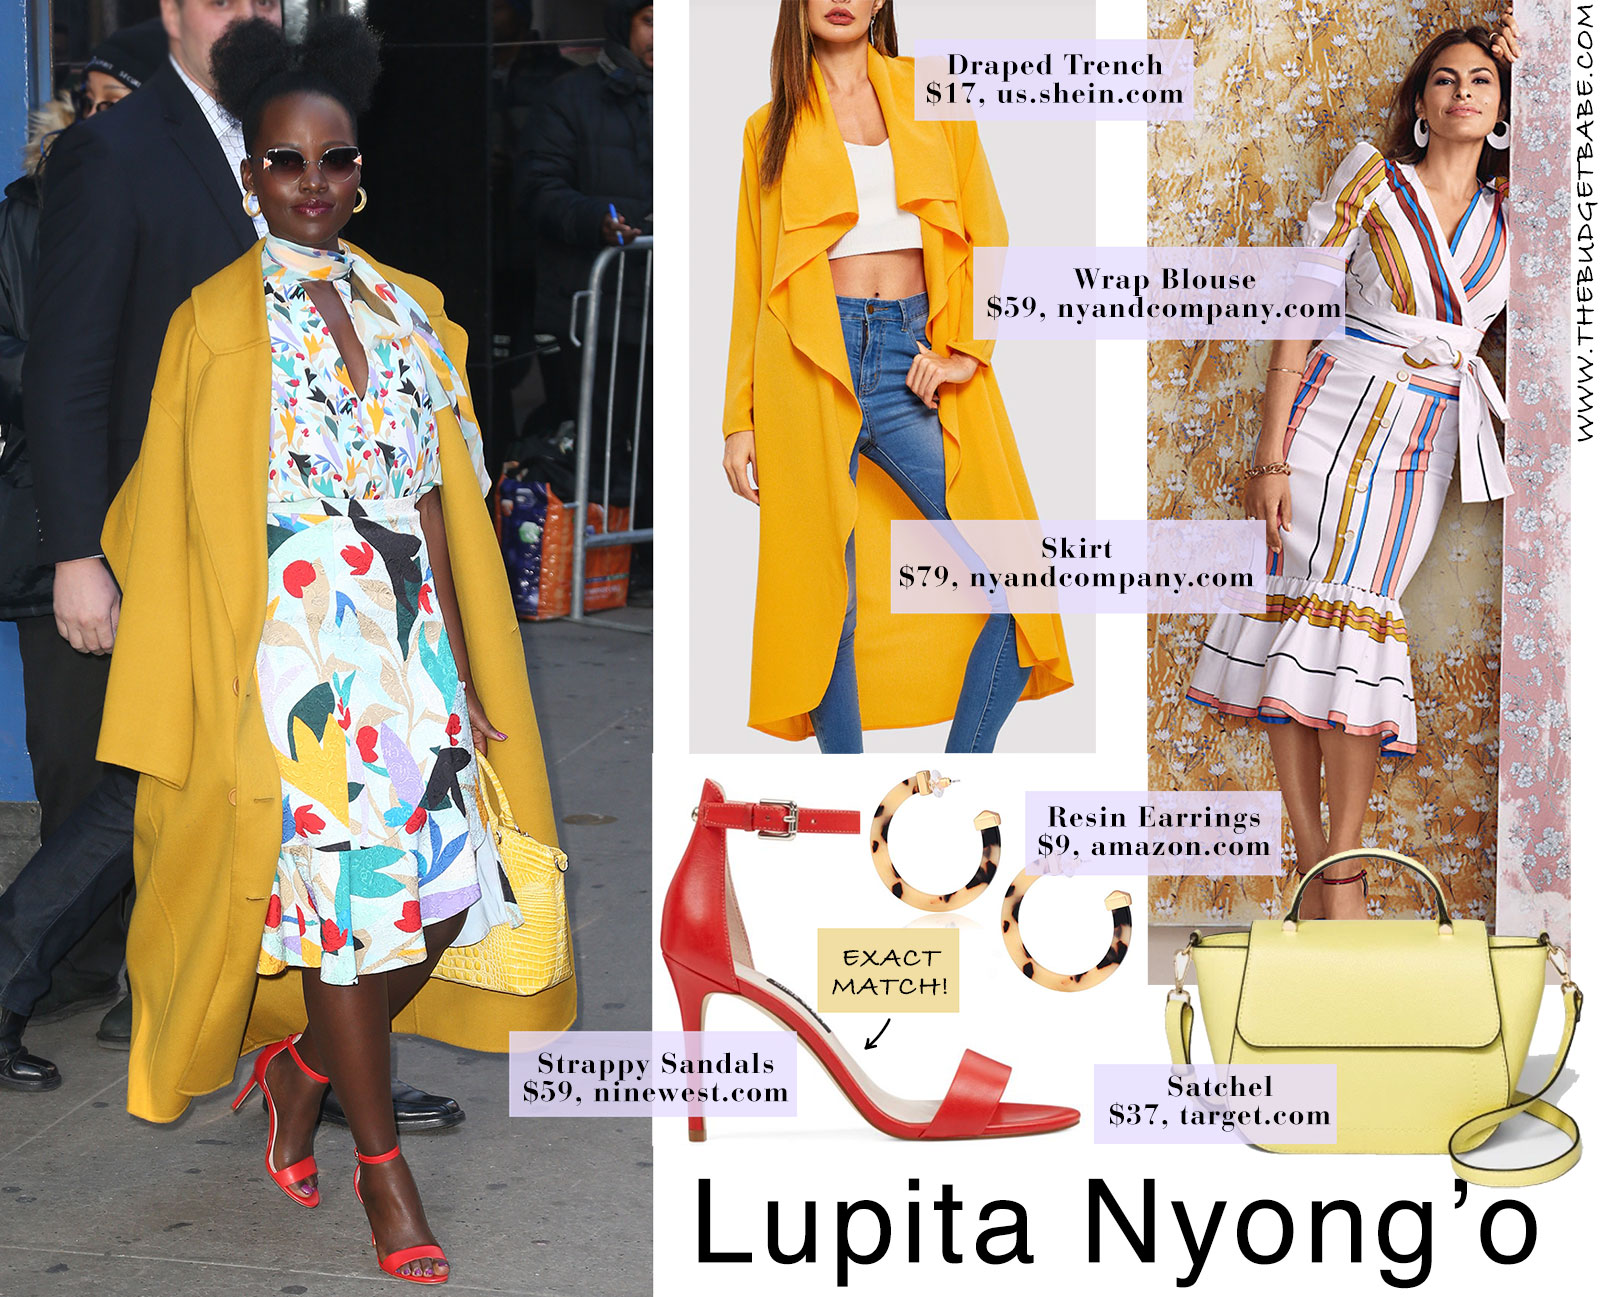 Lupita Nyong'o in floral dress, yellow coat and red strappy heels by Nine West